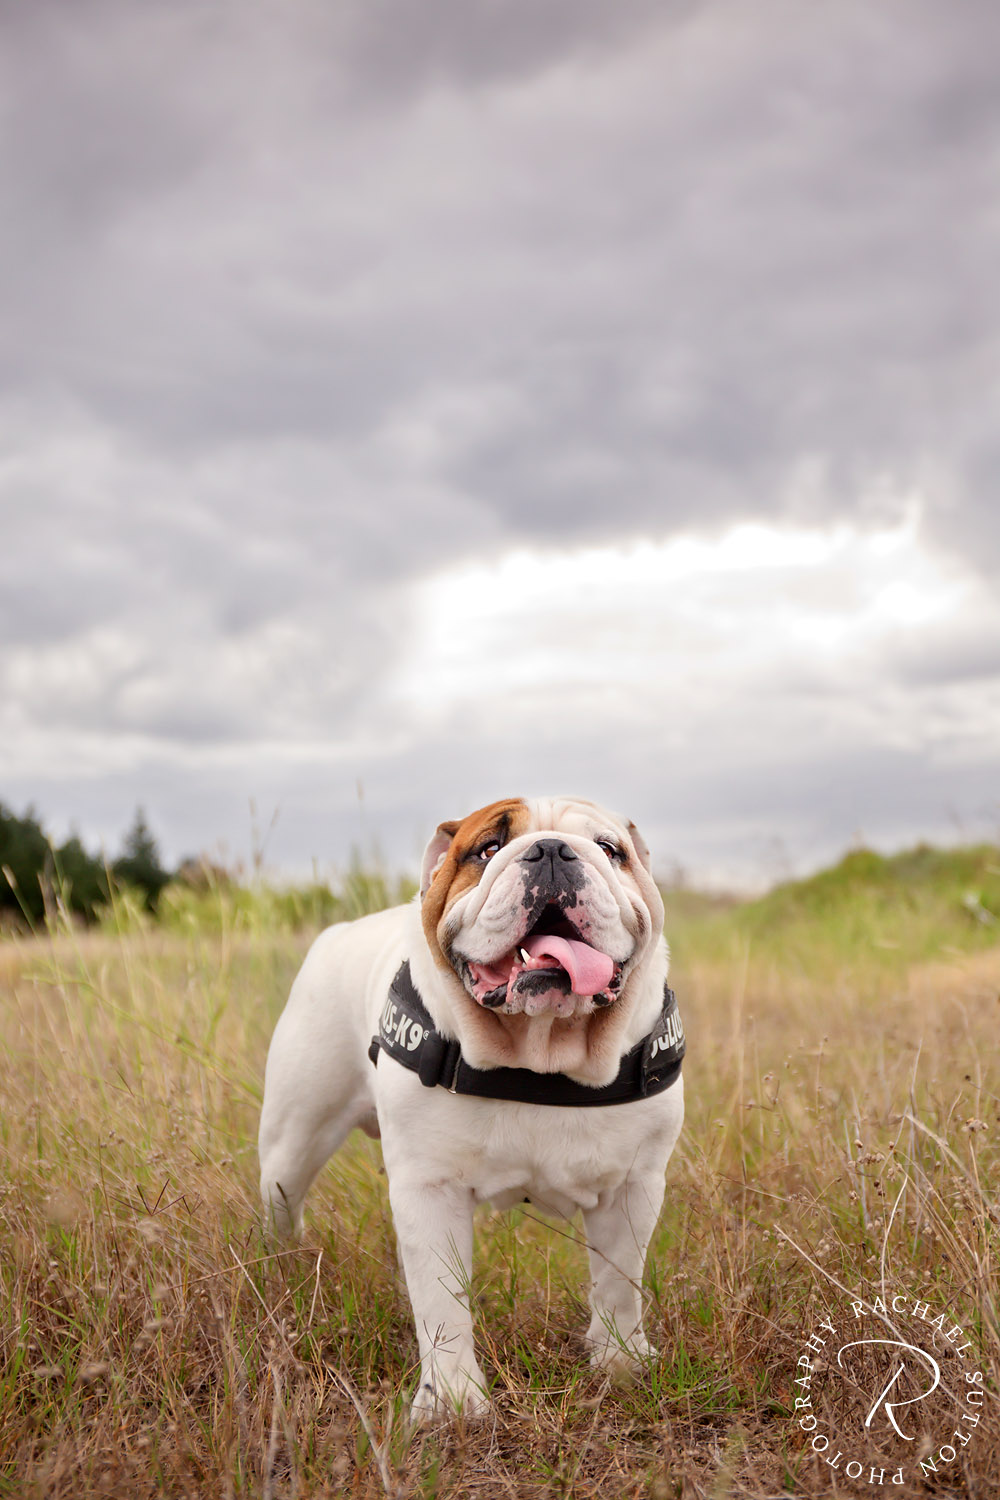 pet photo, Bulldog, dog, standing on grass at the beach in Raglan, New Zealand